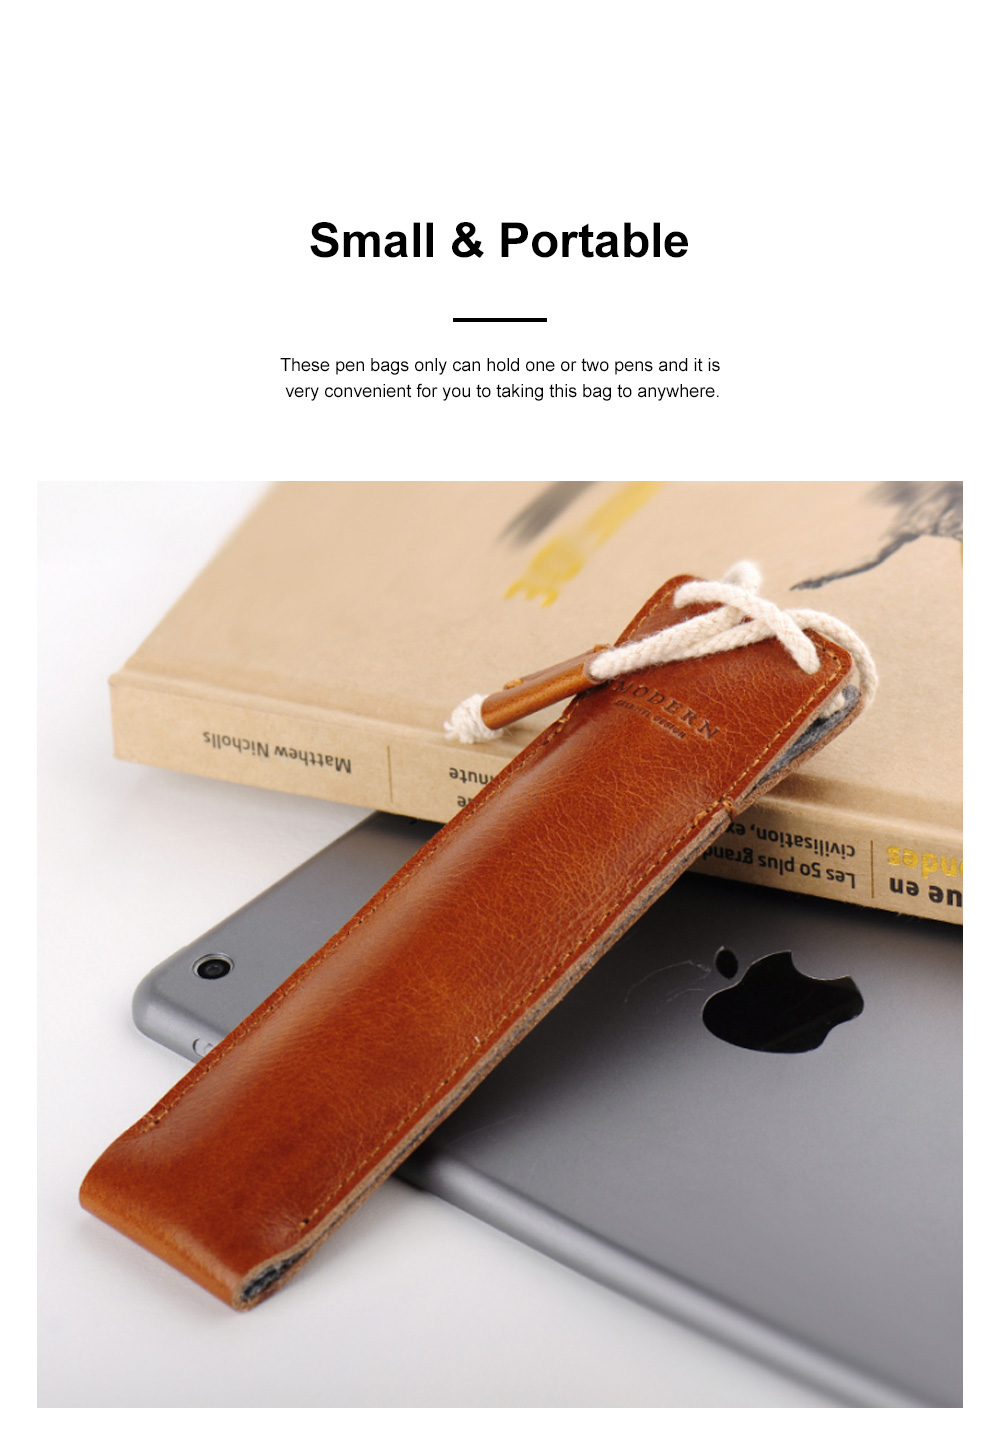 Minimalist Vintage Business Tough Soft Leather Pen Bag Pencil Case with Delicate Stitching Smooth Wool Felt Lining 1